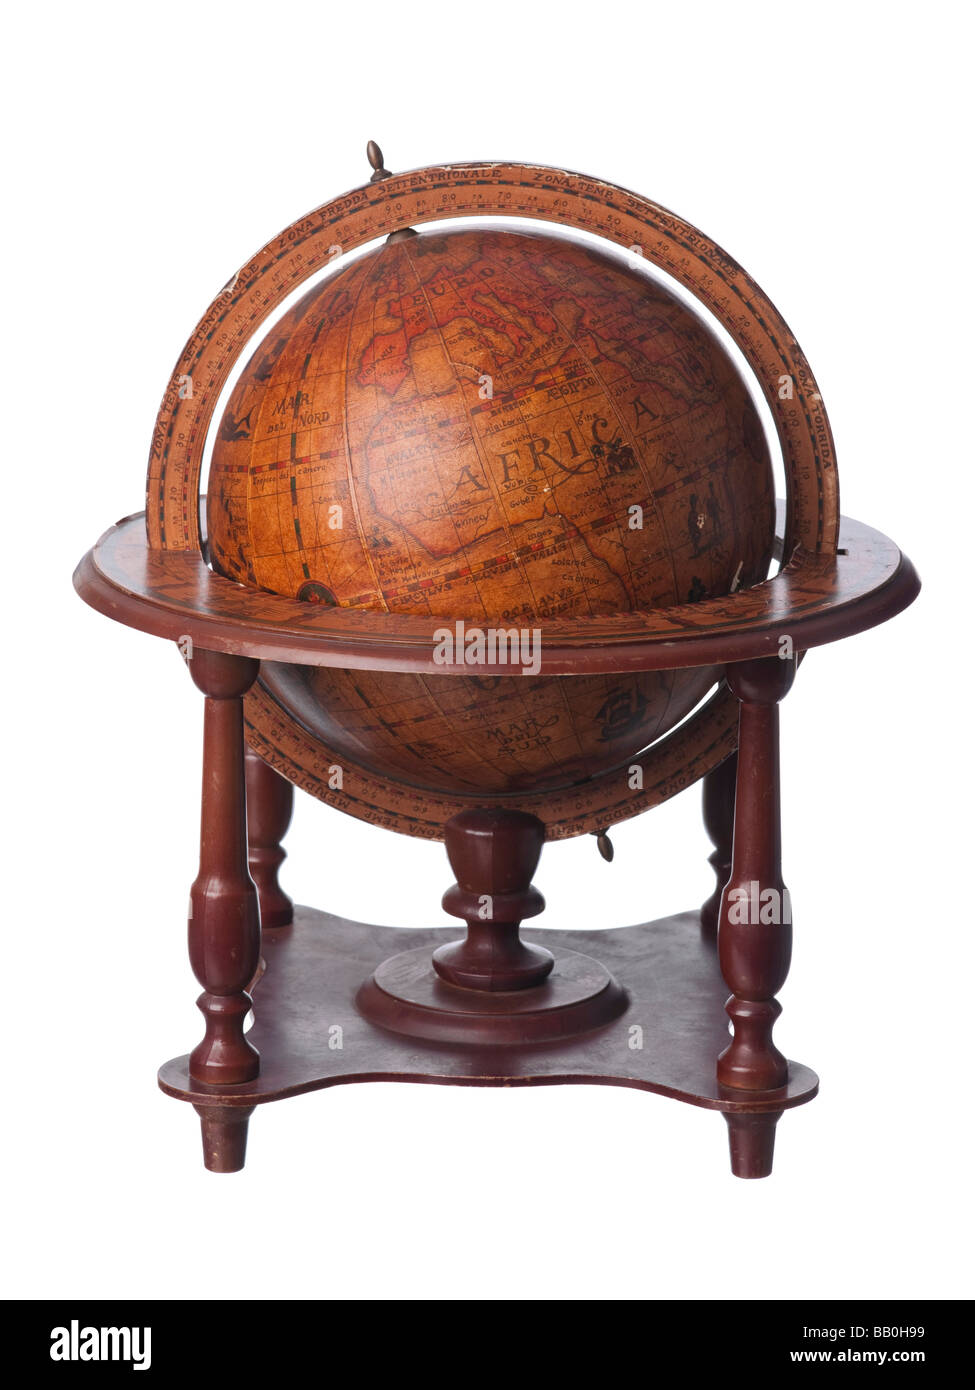 Vintage old earth globe showing Africa - Stock Image